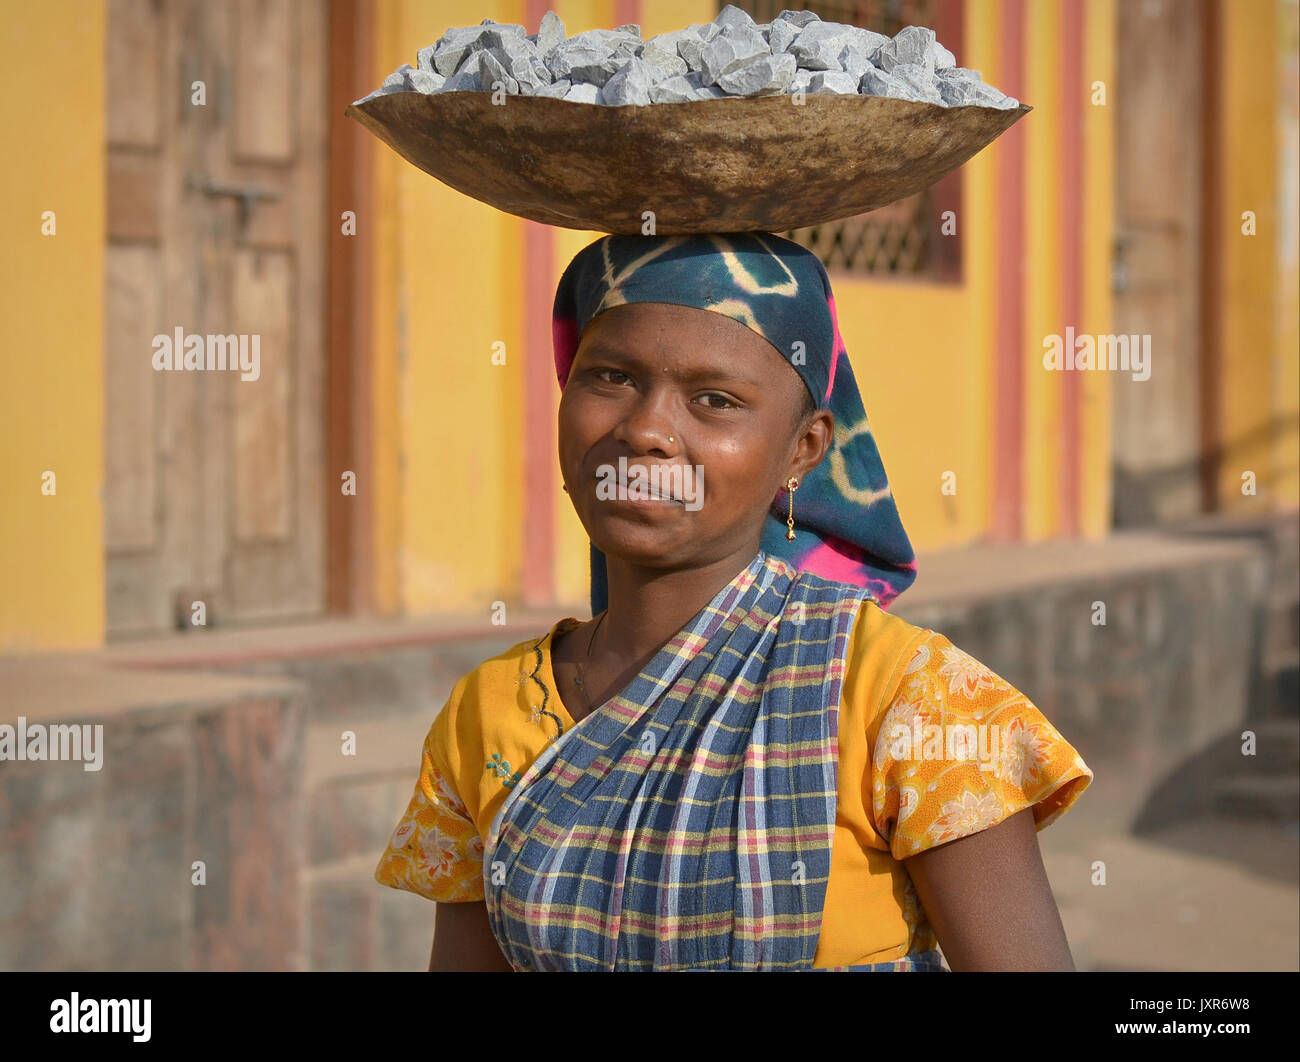 Closeup street portrait of a sari-clad young Indian Adivasi tribal woman, balancing on her head a metal bowl with Stock Photo